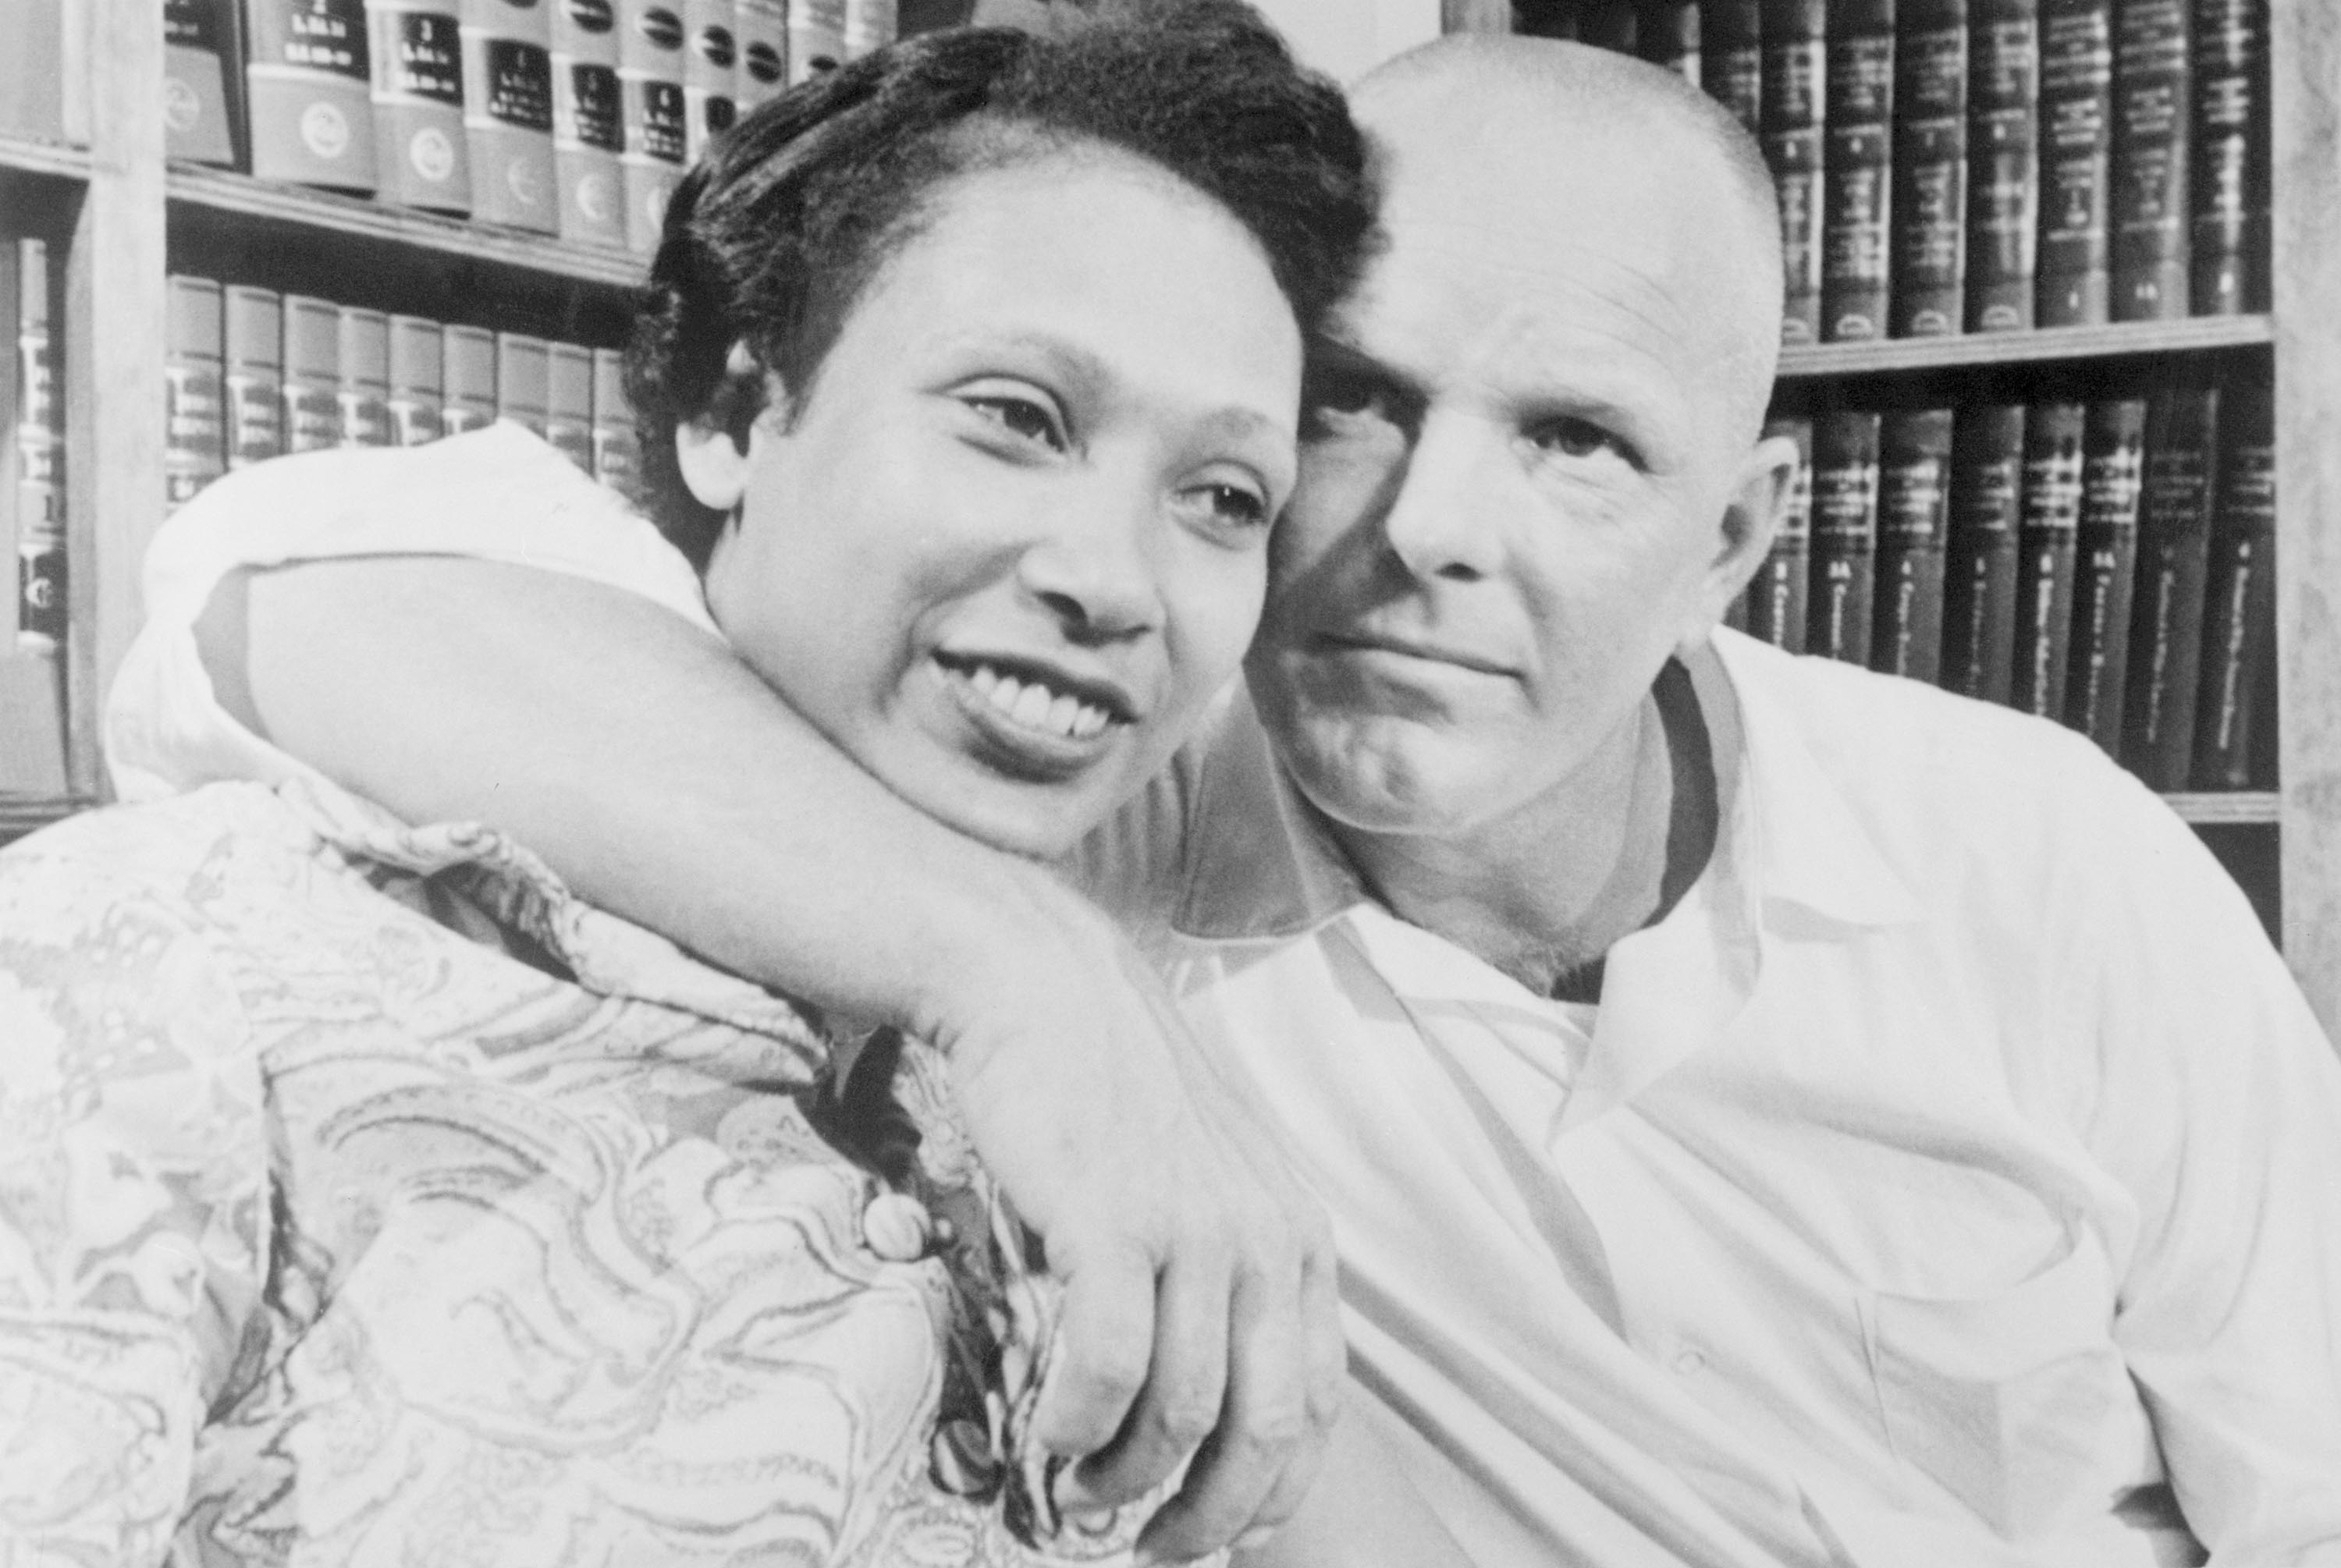 On this day in 1967: Loving v. Virginia and interracial marriage